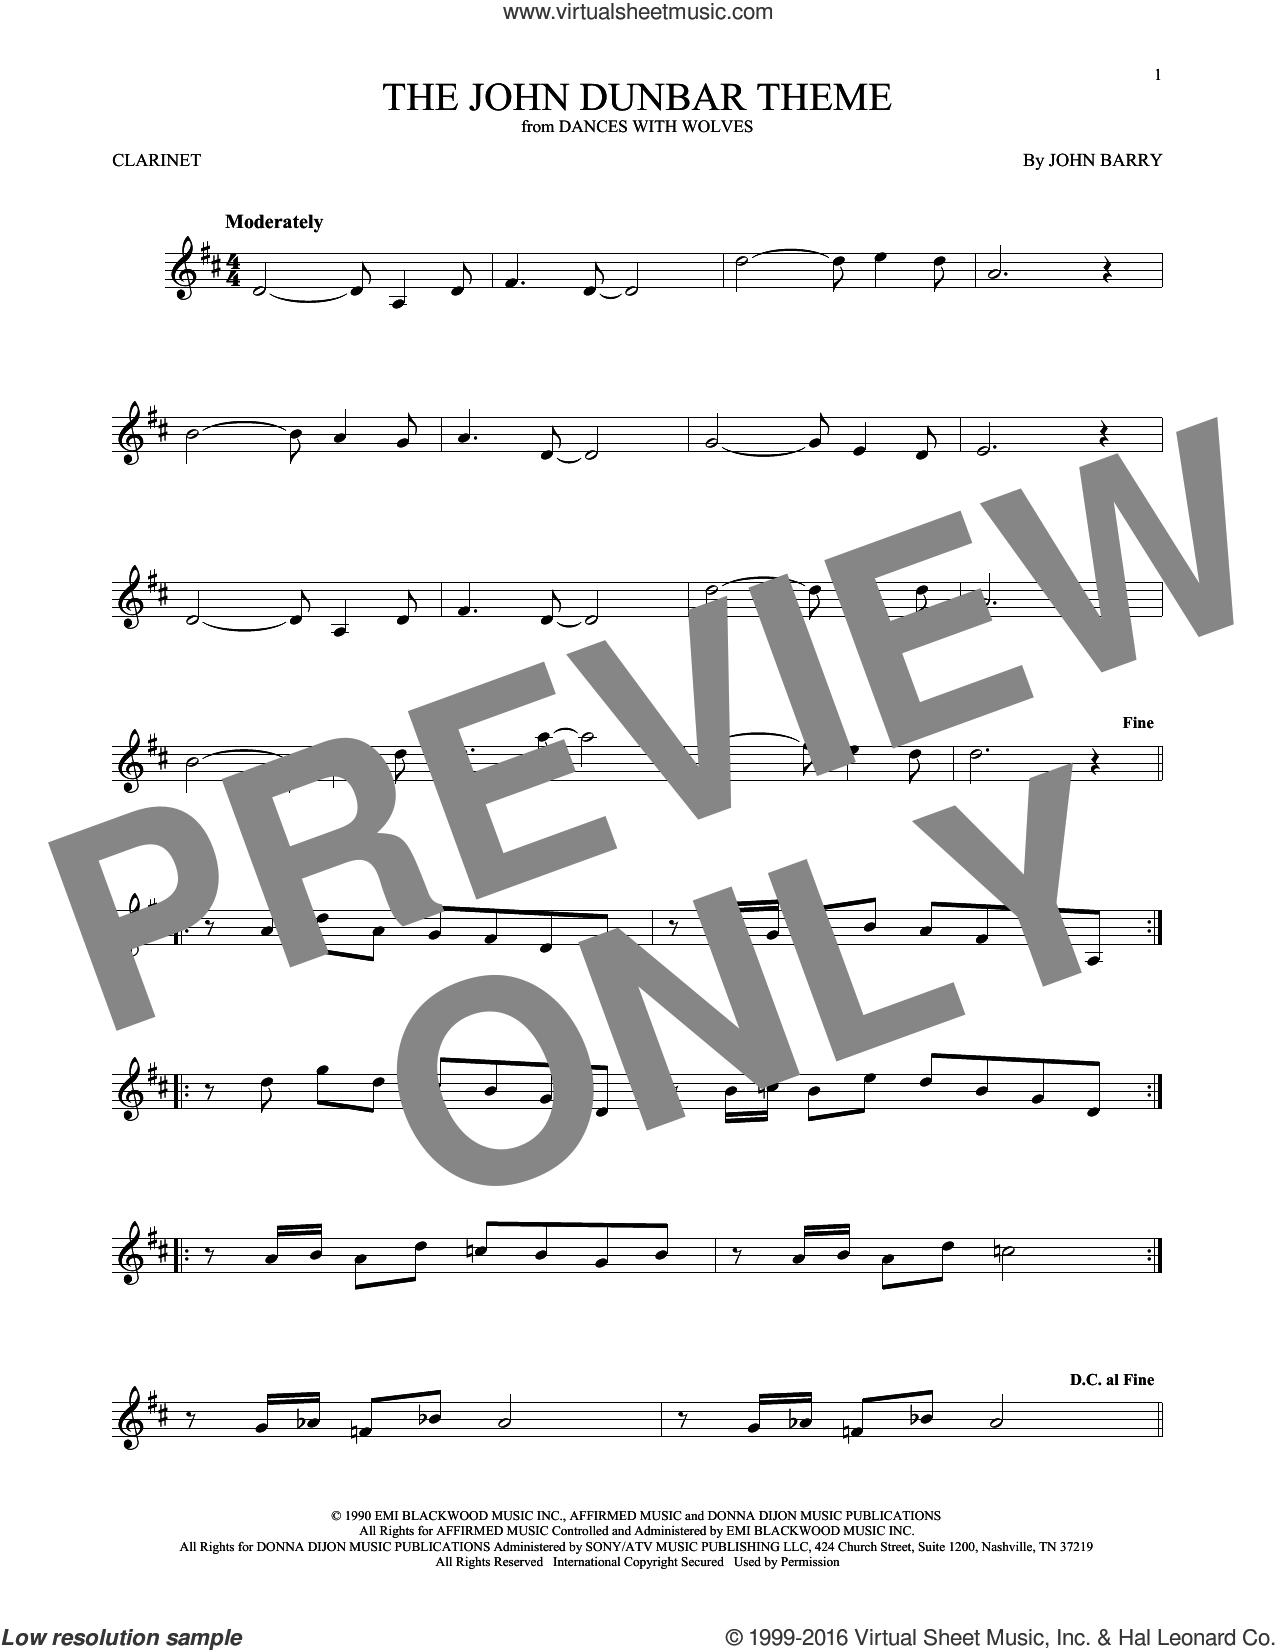 The John Dunbar Theme sheet music for clarinet solo by John Barry, intermediate